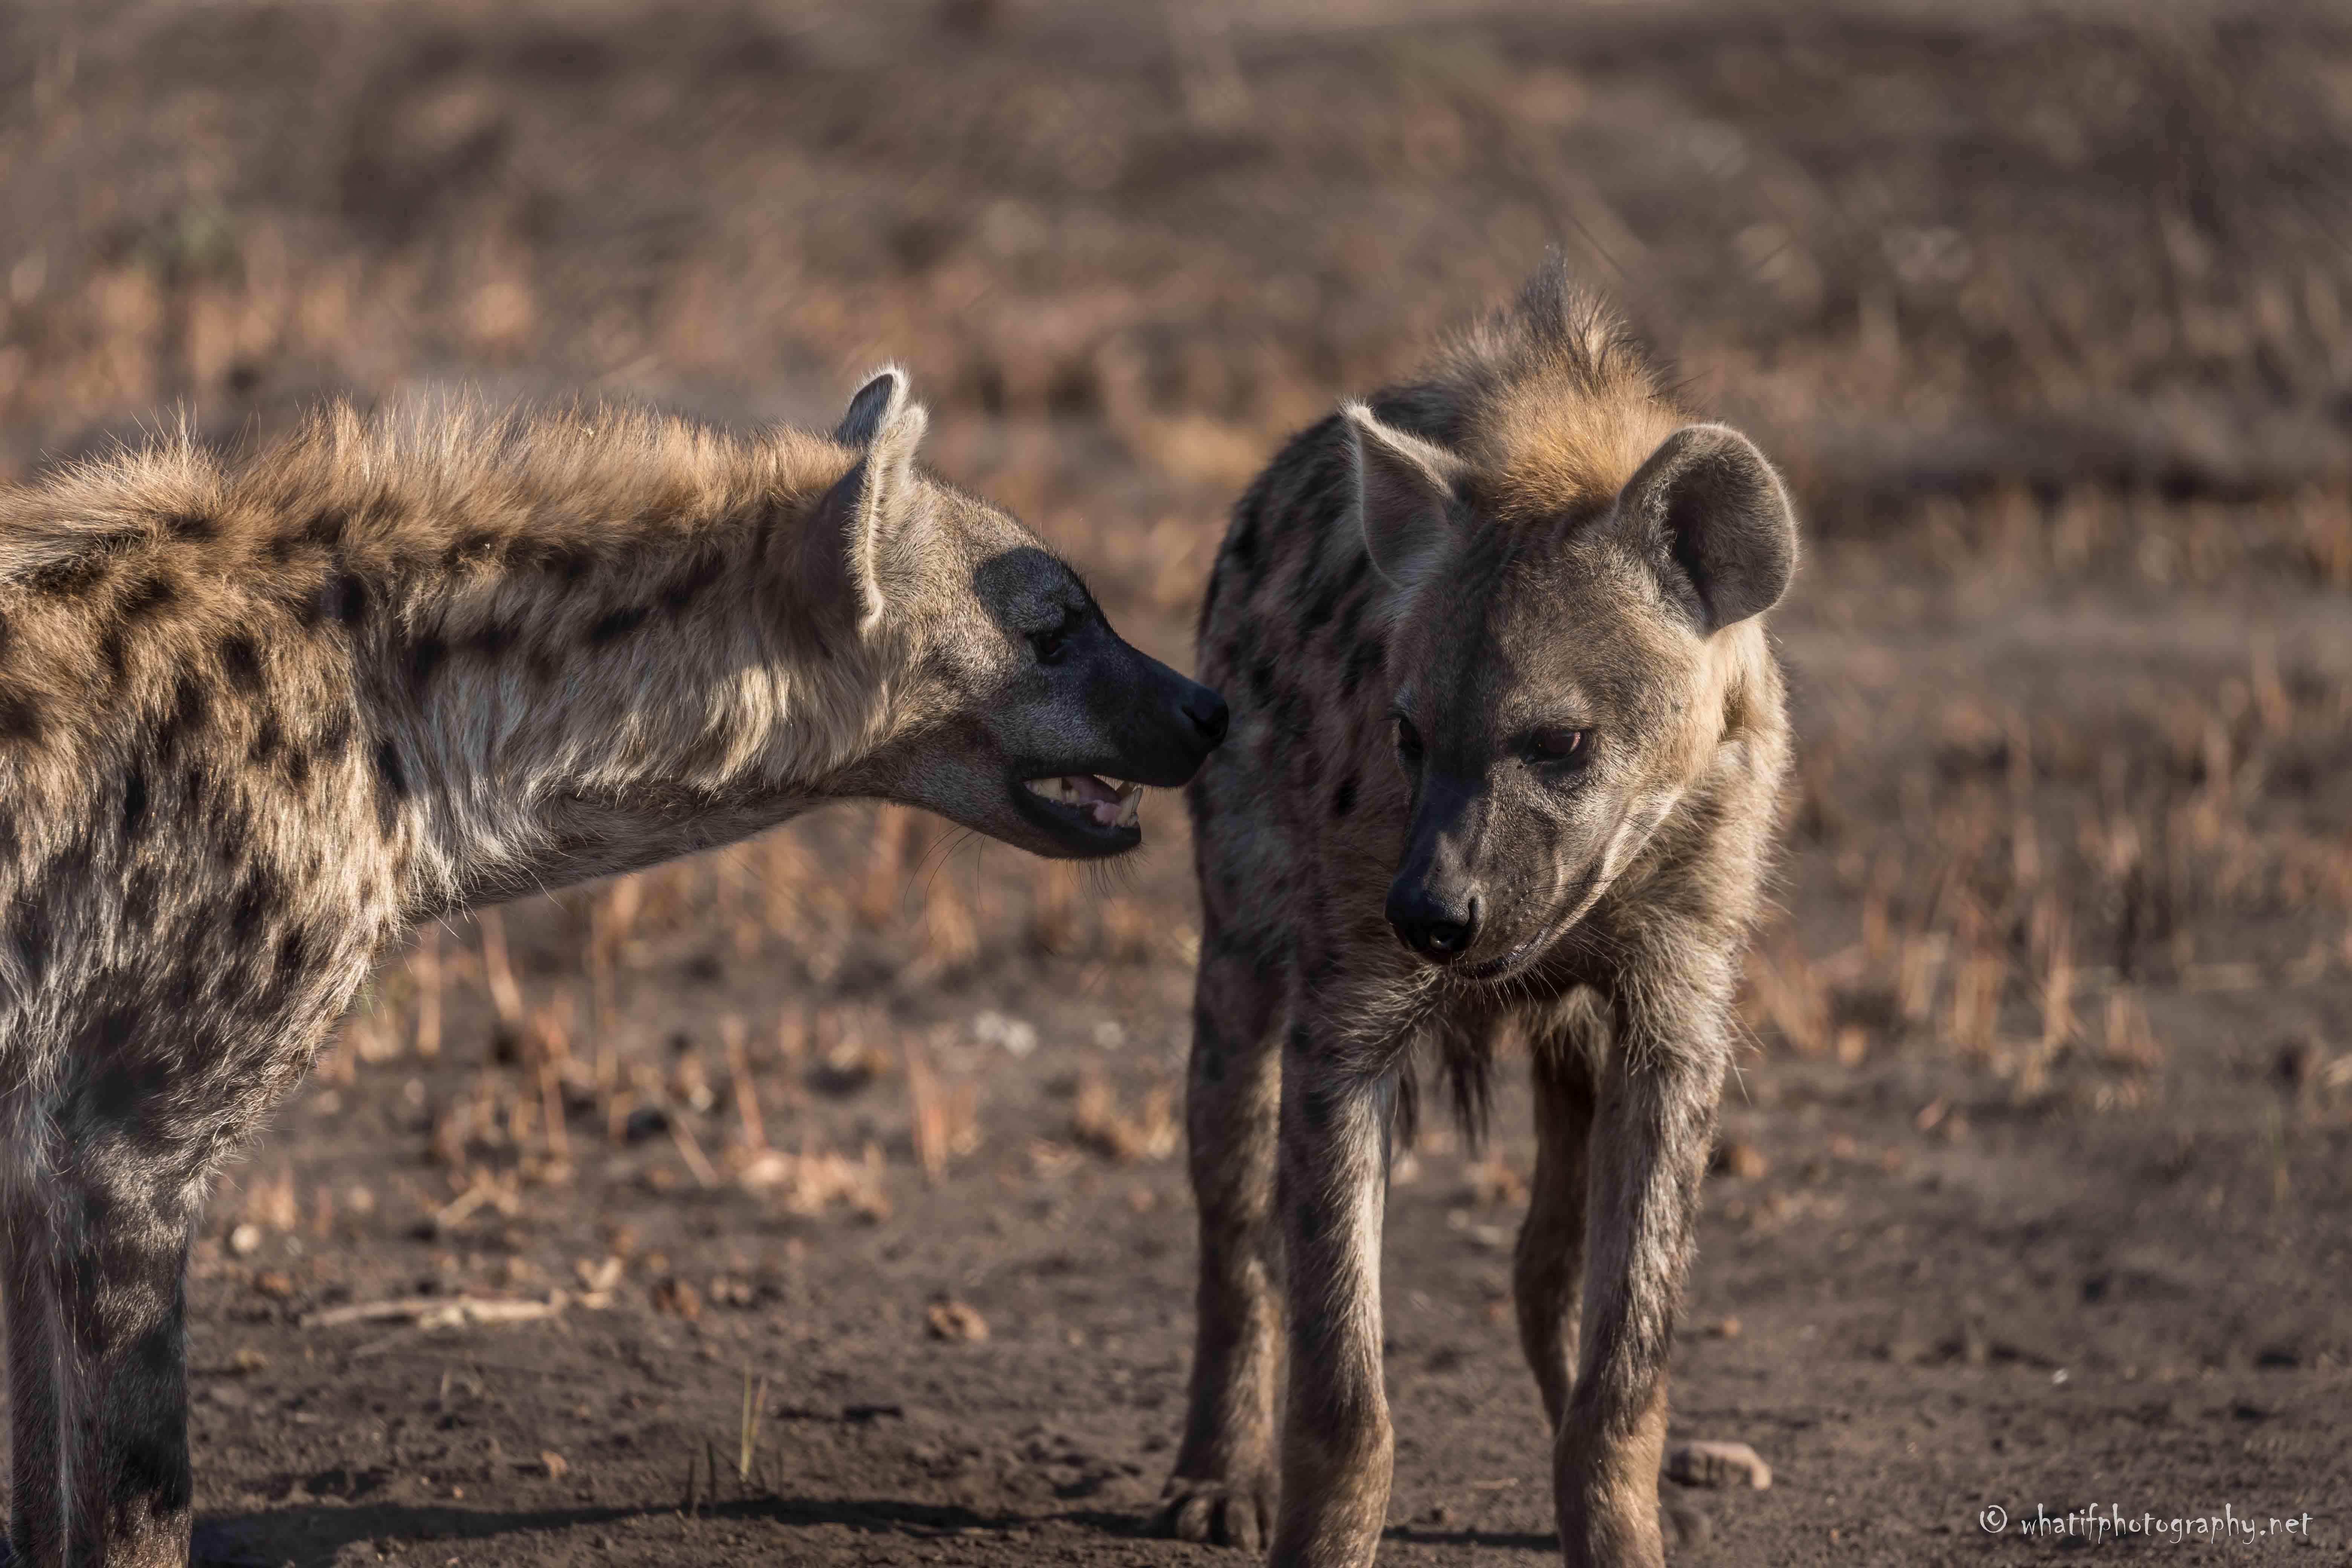 2 spotted hyenas